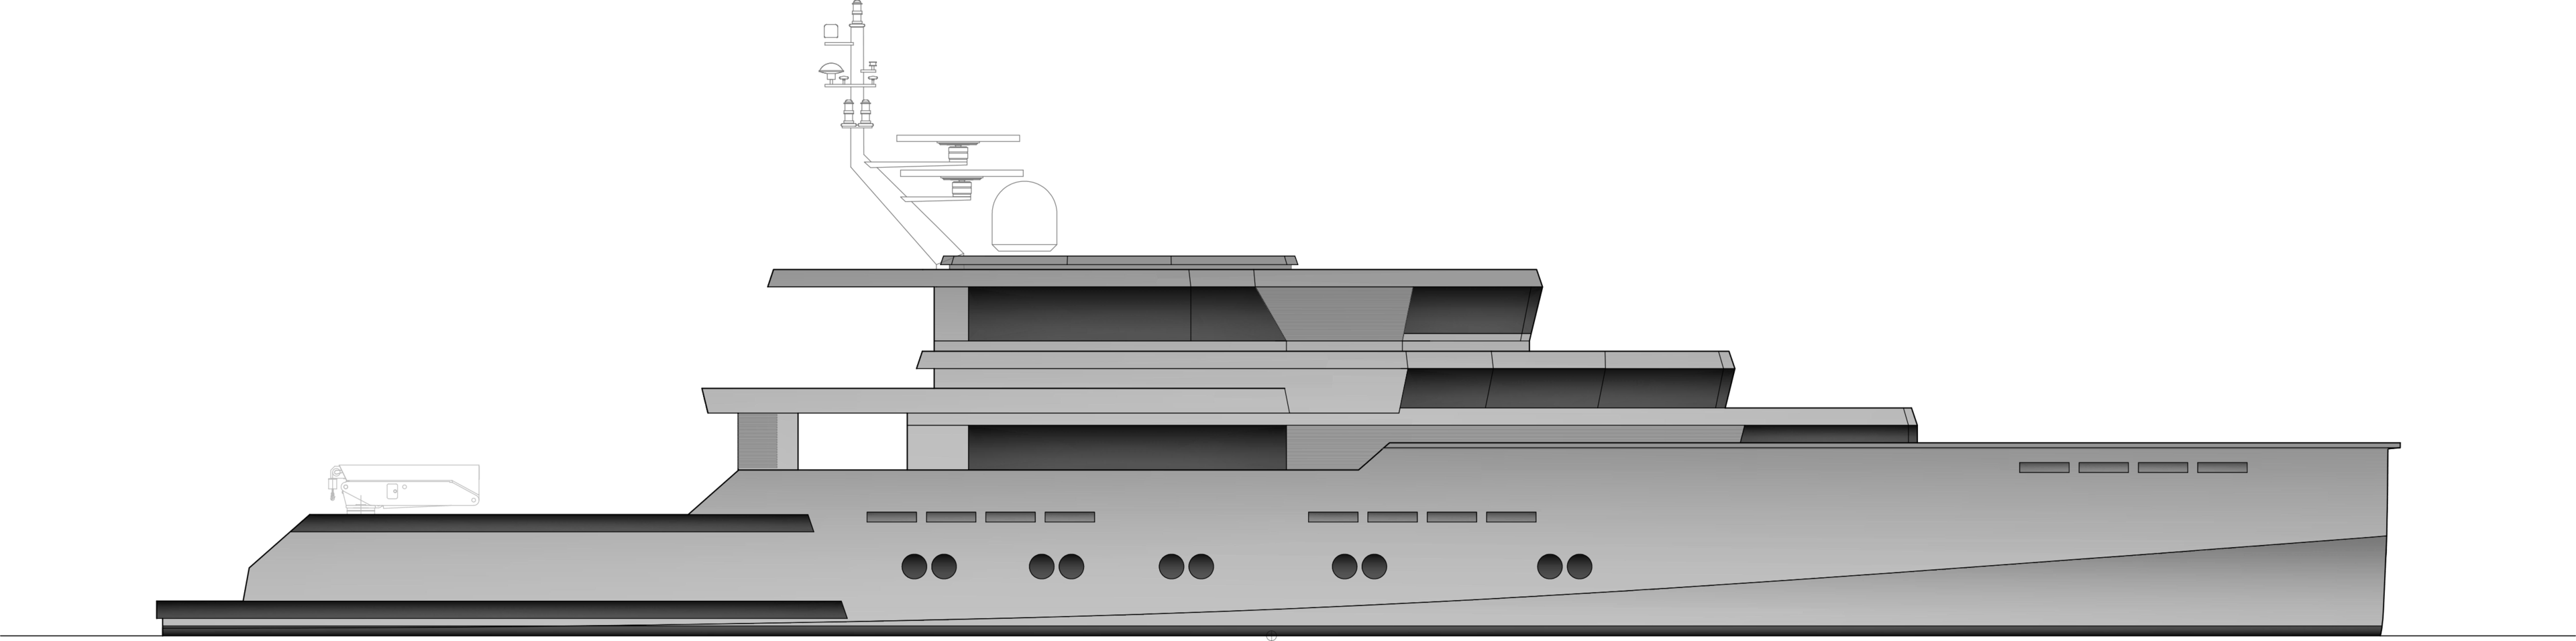 MMYD_063_45m Explorer Yacht GA_1_profile.png